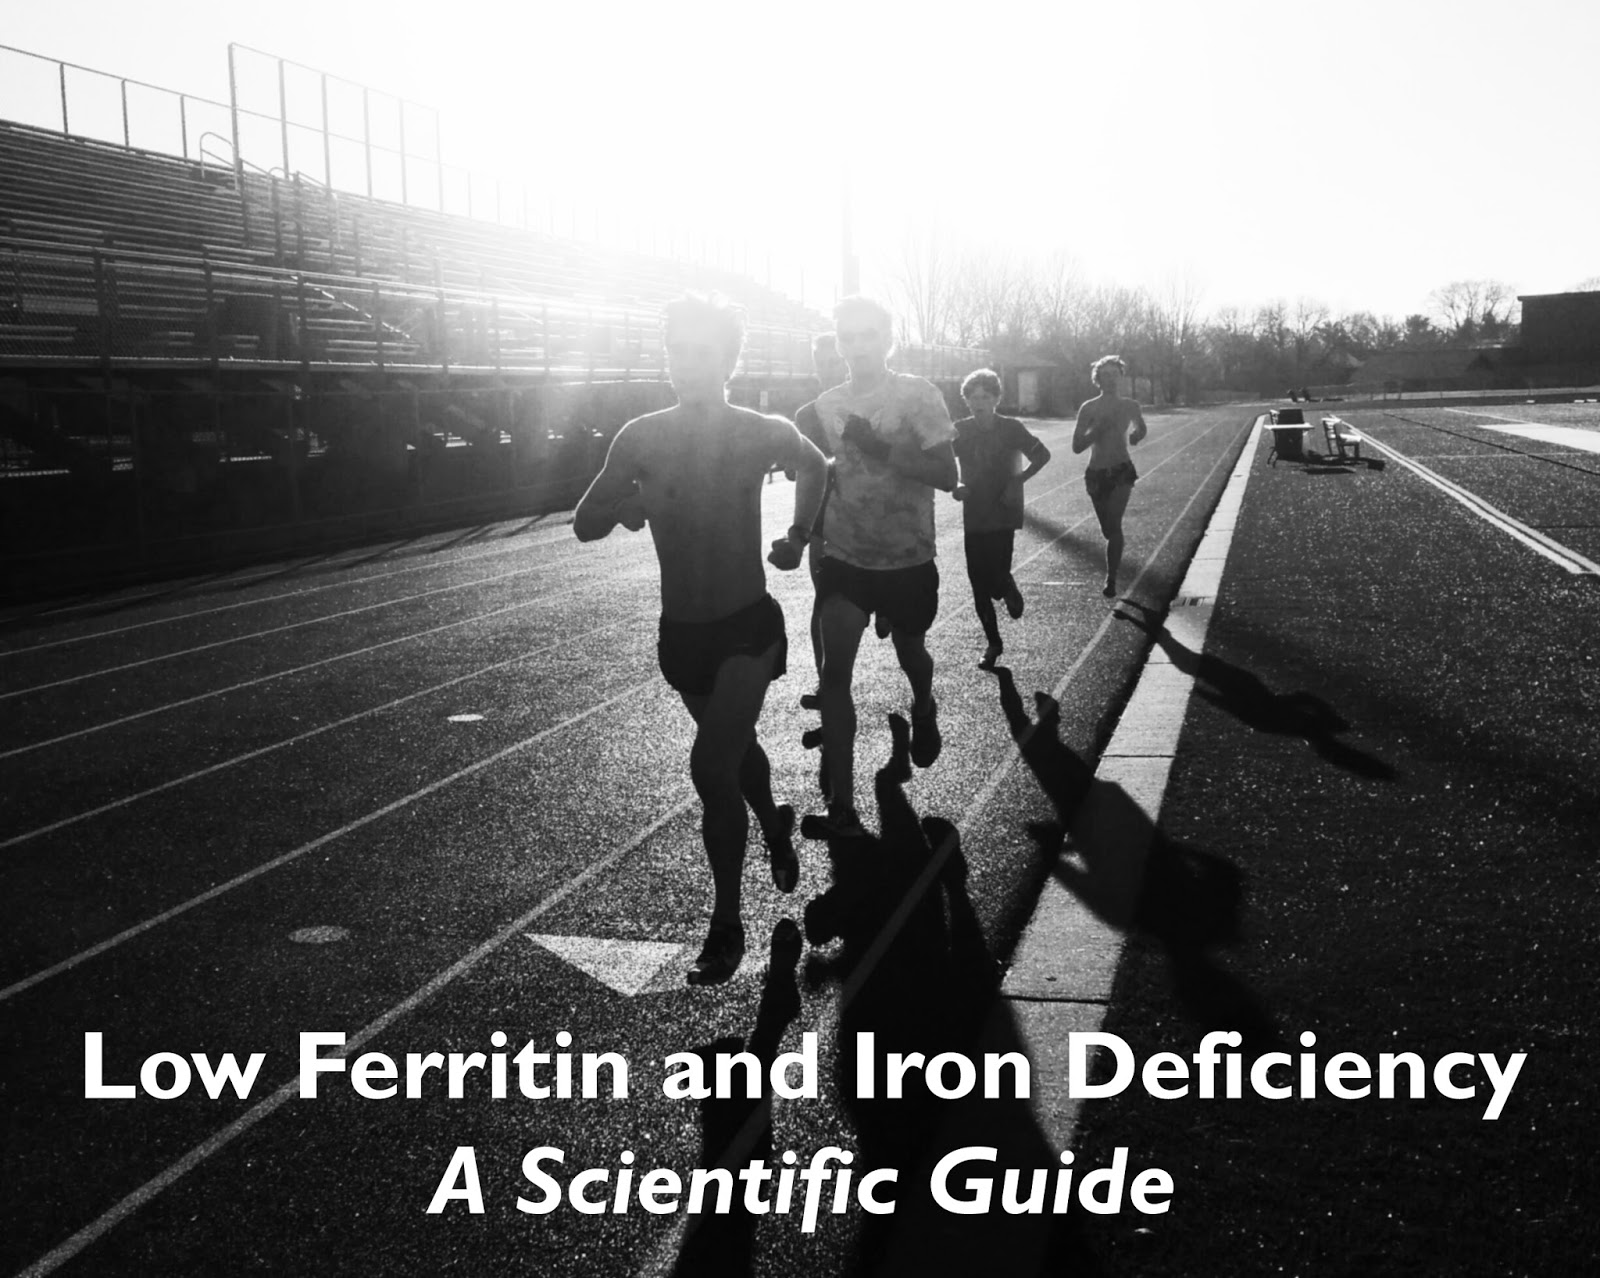 Running writings: Low ferritin and iron deficiency anemia in